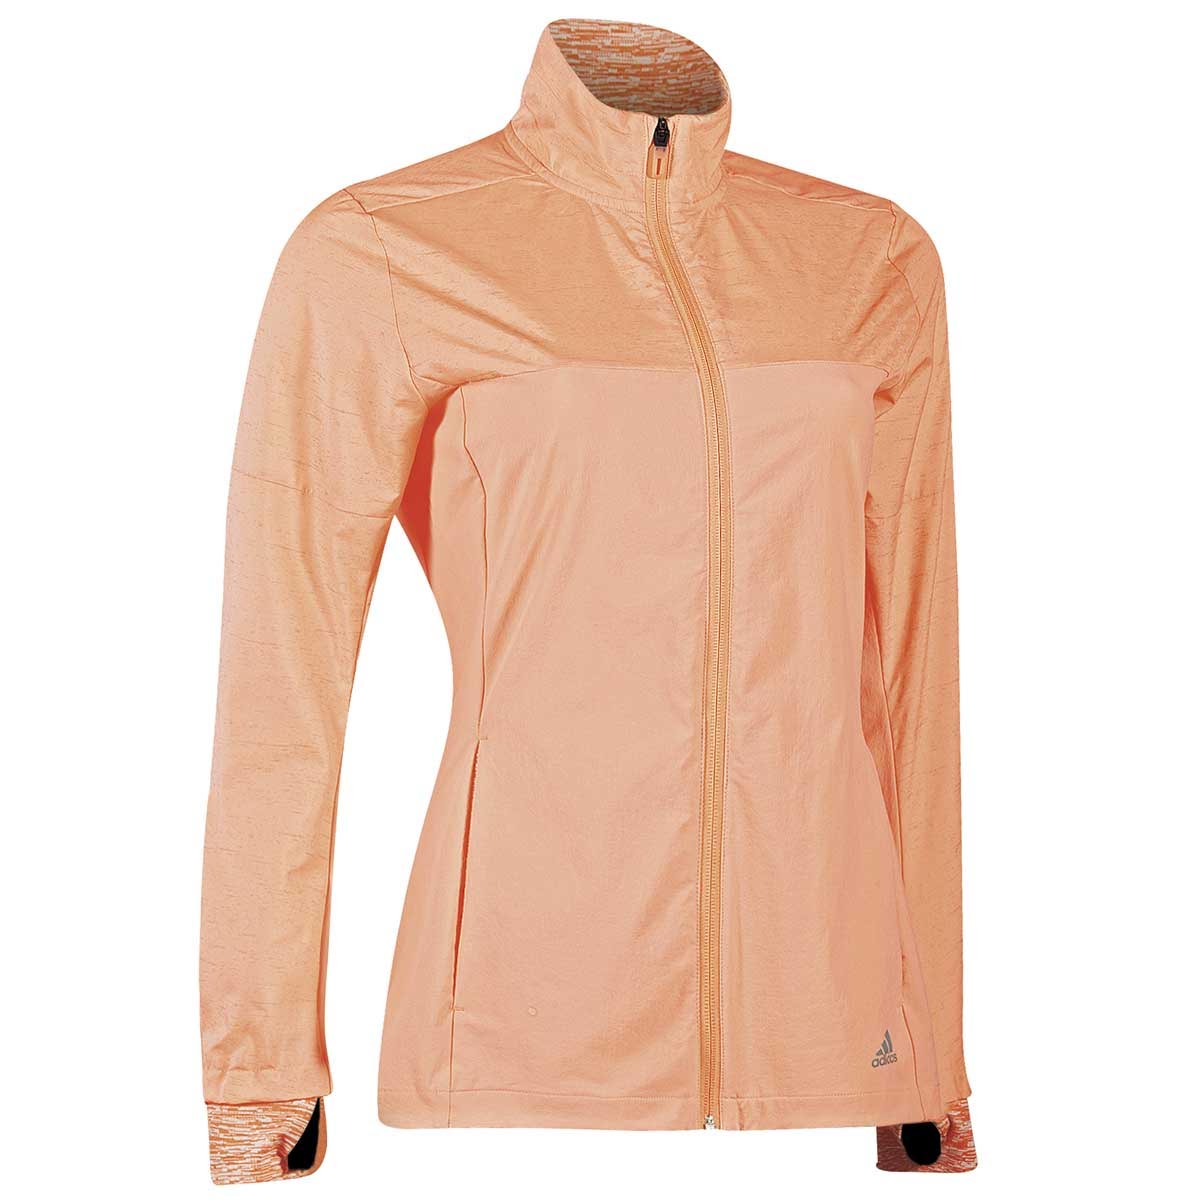 Details about adidas Supernova Storm Womens Ladies Fitness Running Jacket Coat Peach